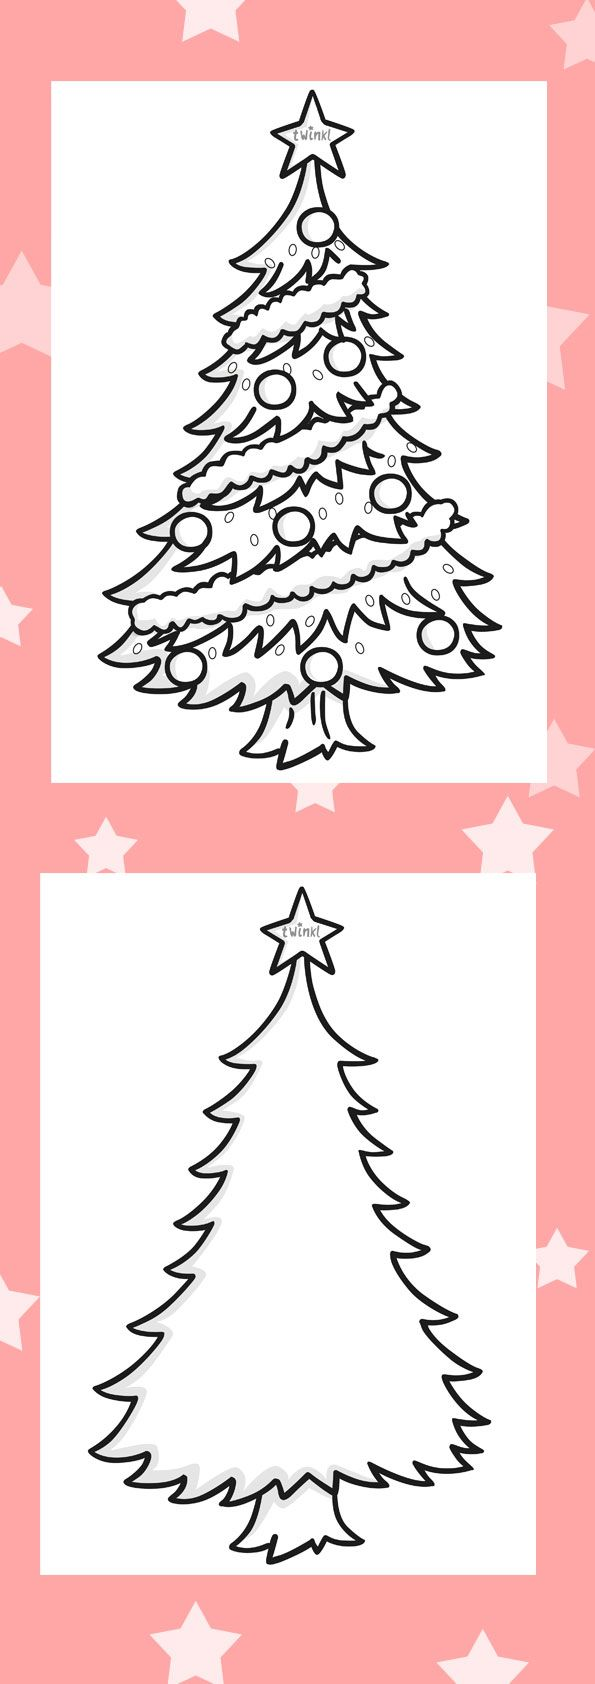 Christmas colouring in sheets twinkl - Twinkl Resources Colour In Christmas Trees Printable Resources For Primary Eyfs